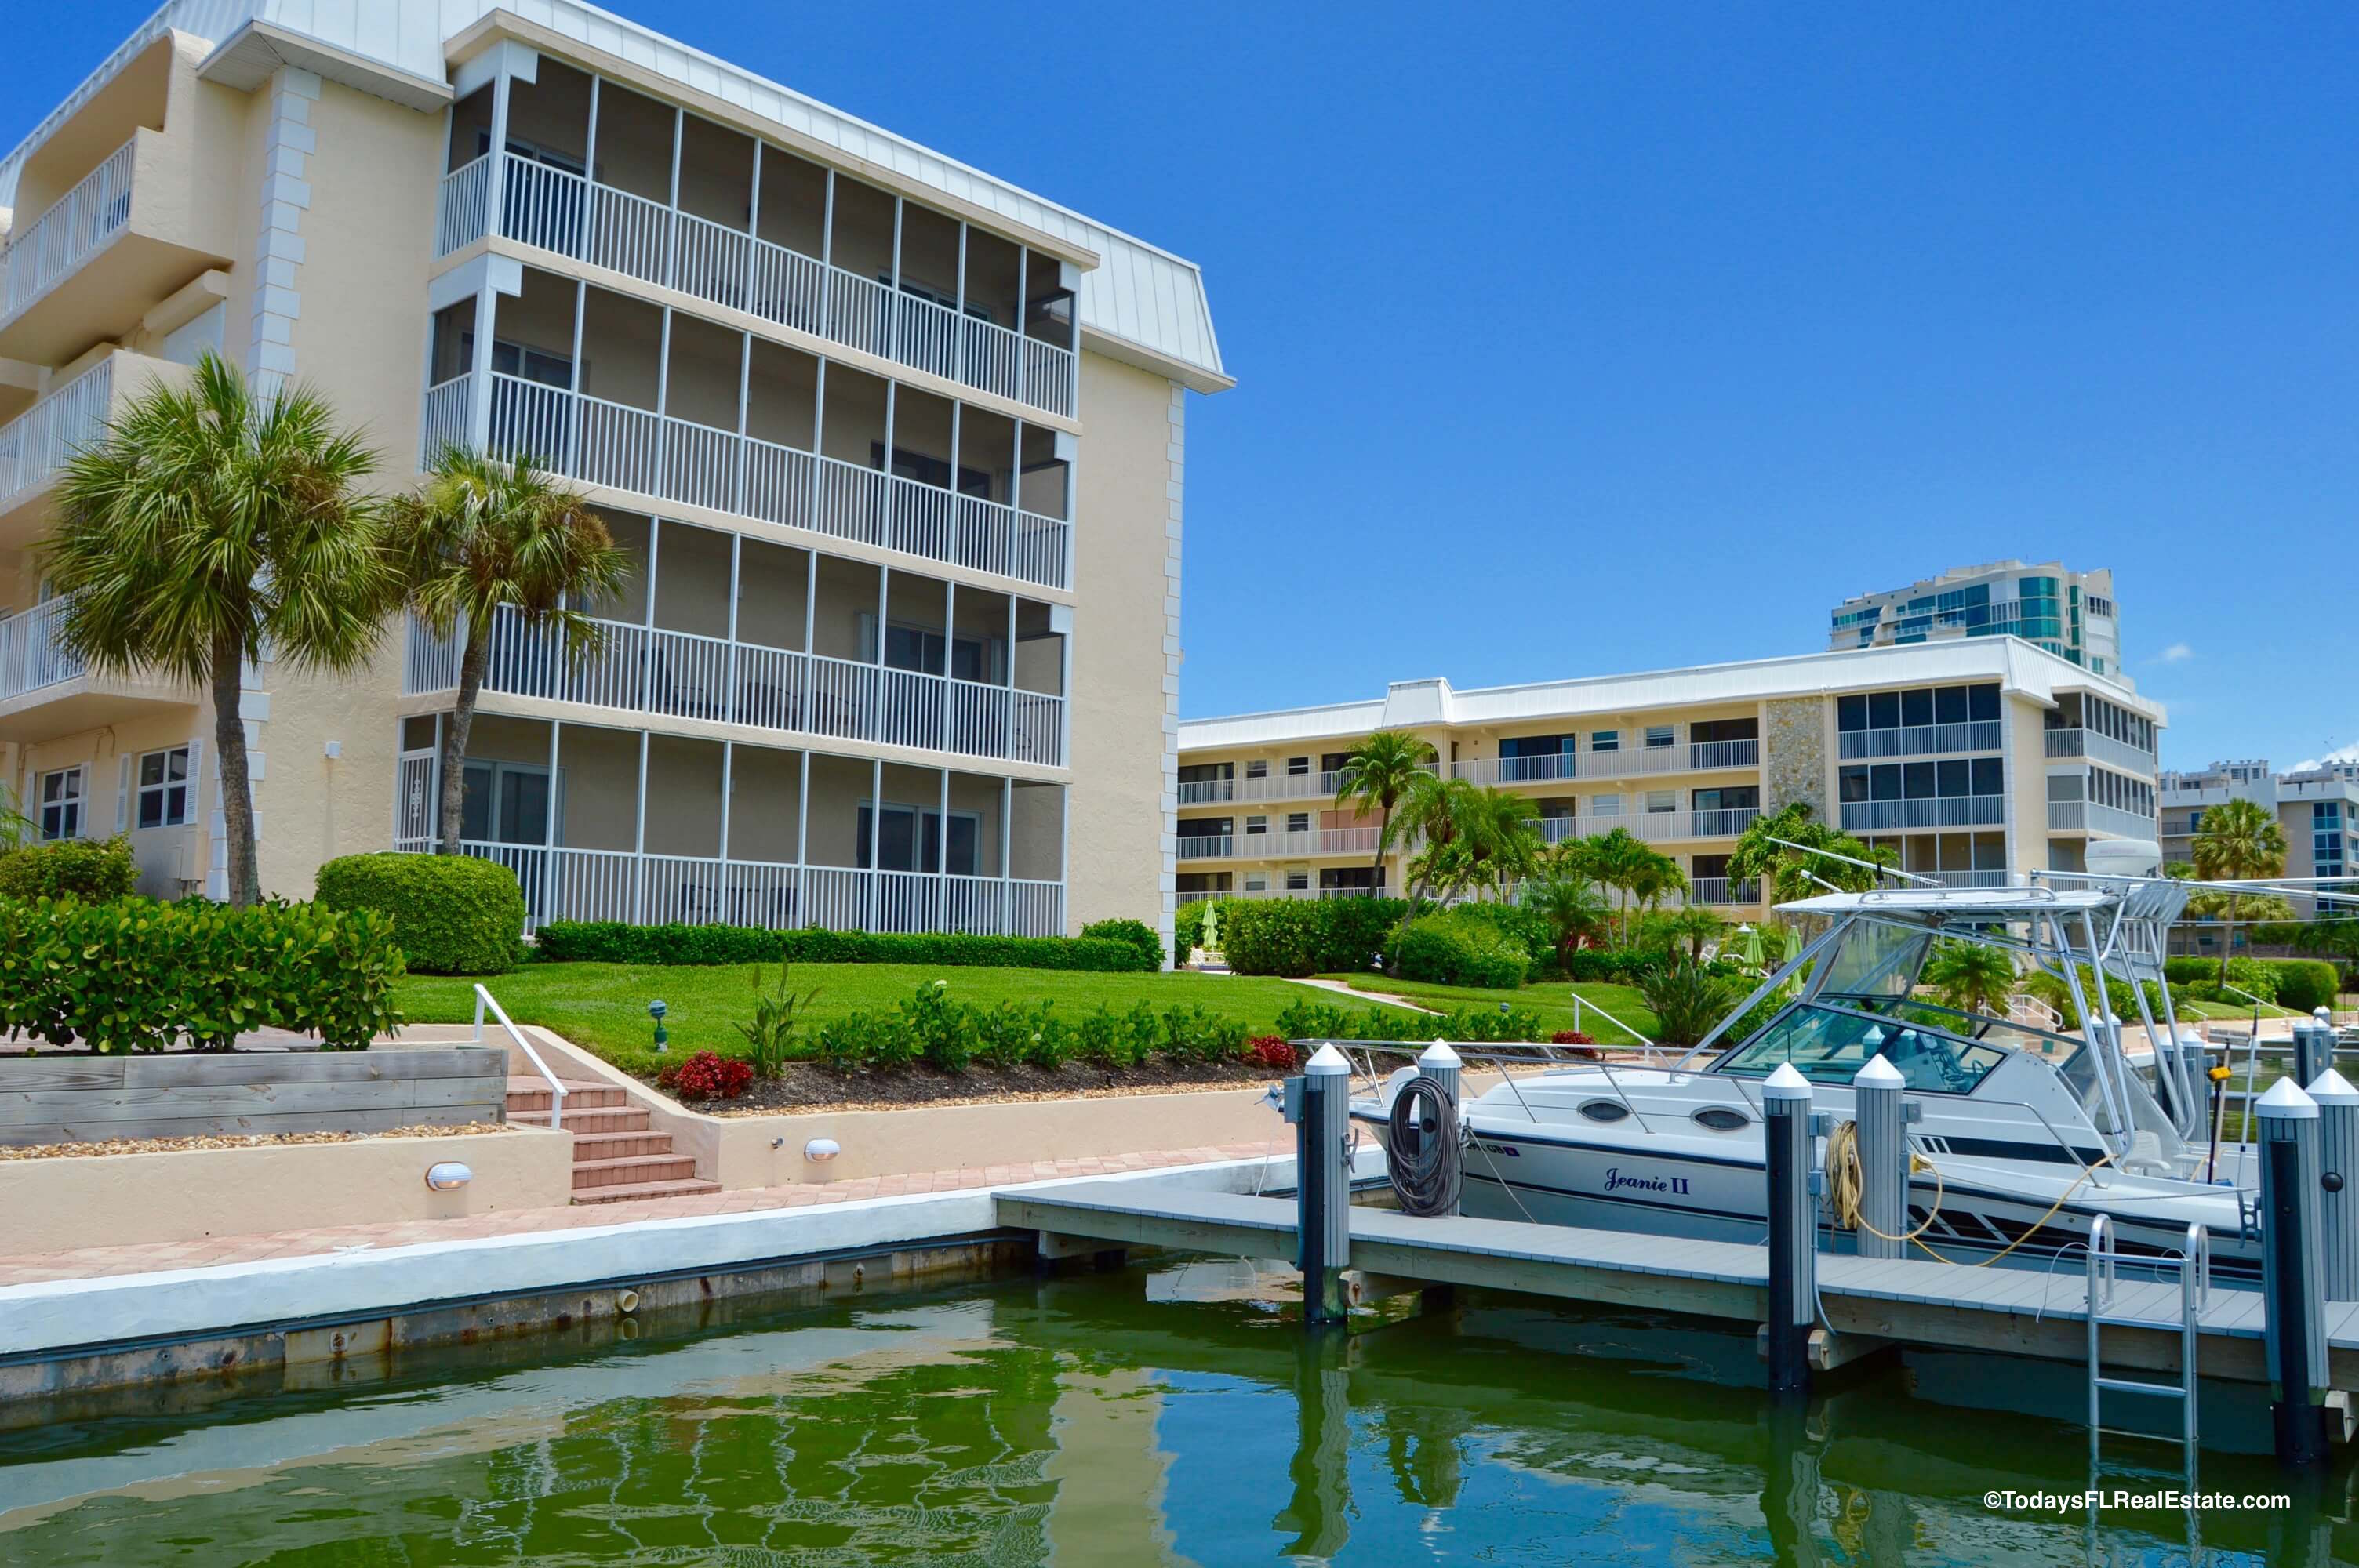 Marco Island Waterfront Condos for Sale, Waterfront Condos Marco Island, Boating Marco Island, Waterfront Real Estate Marco Island